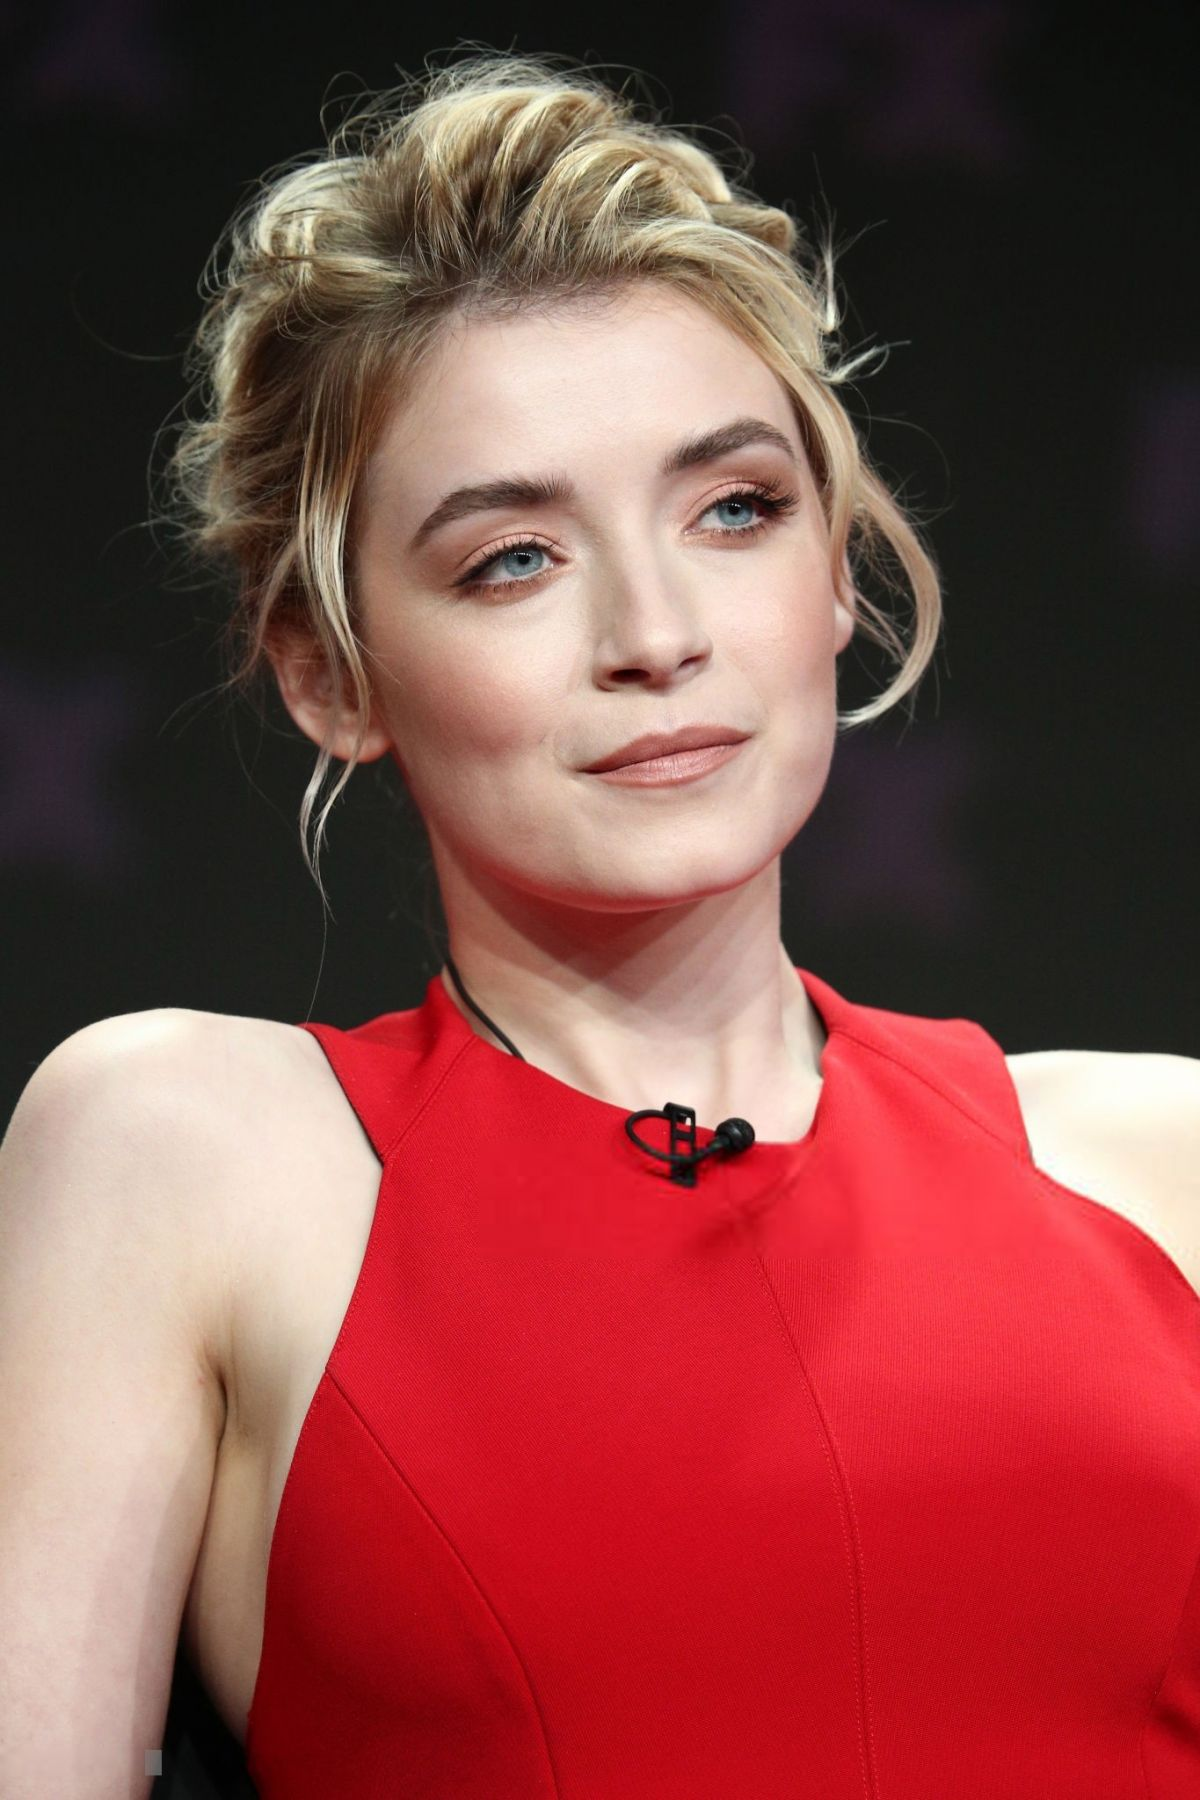 Pics Sarah Bolger nude (35 foto and video), Topless, Paparazzi, Feet, butt 2019